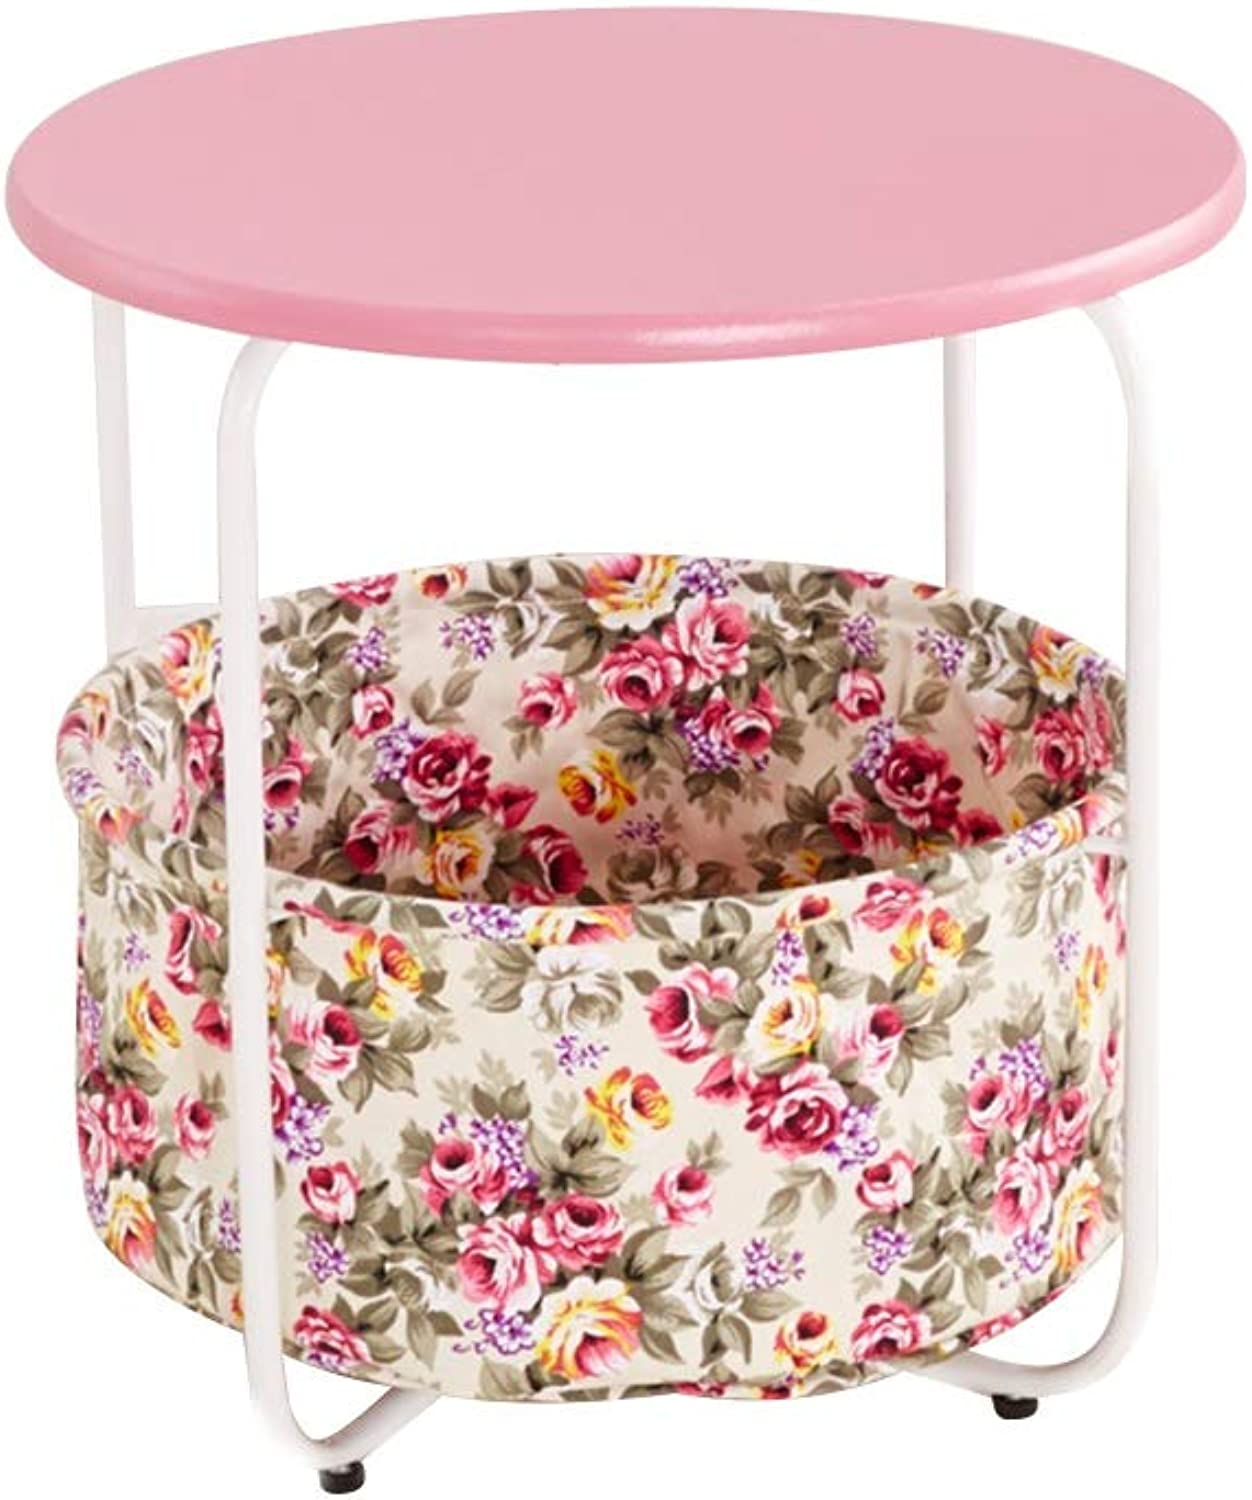 Coffee Table Small Coffee Table, Spacious Countertop with Storage Bag Solid Wood Telephone Table for Living Room Bedroom (color   Pink)